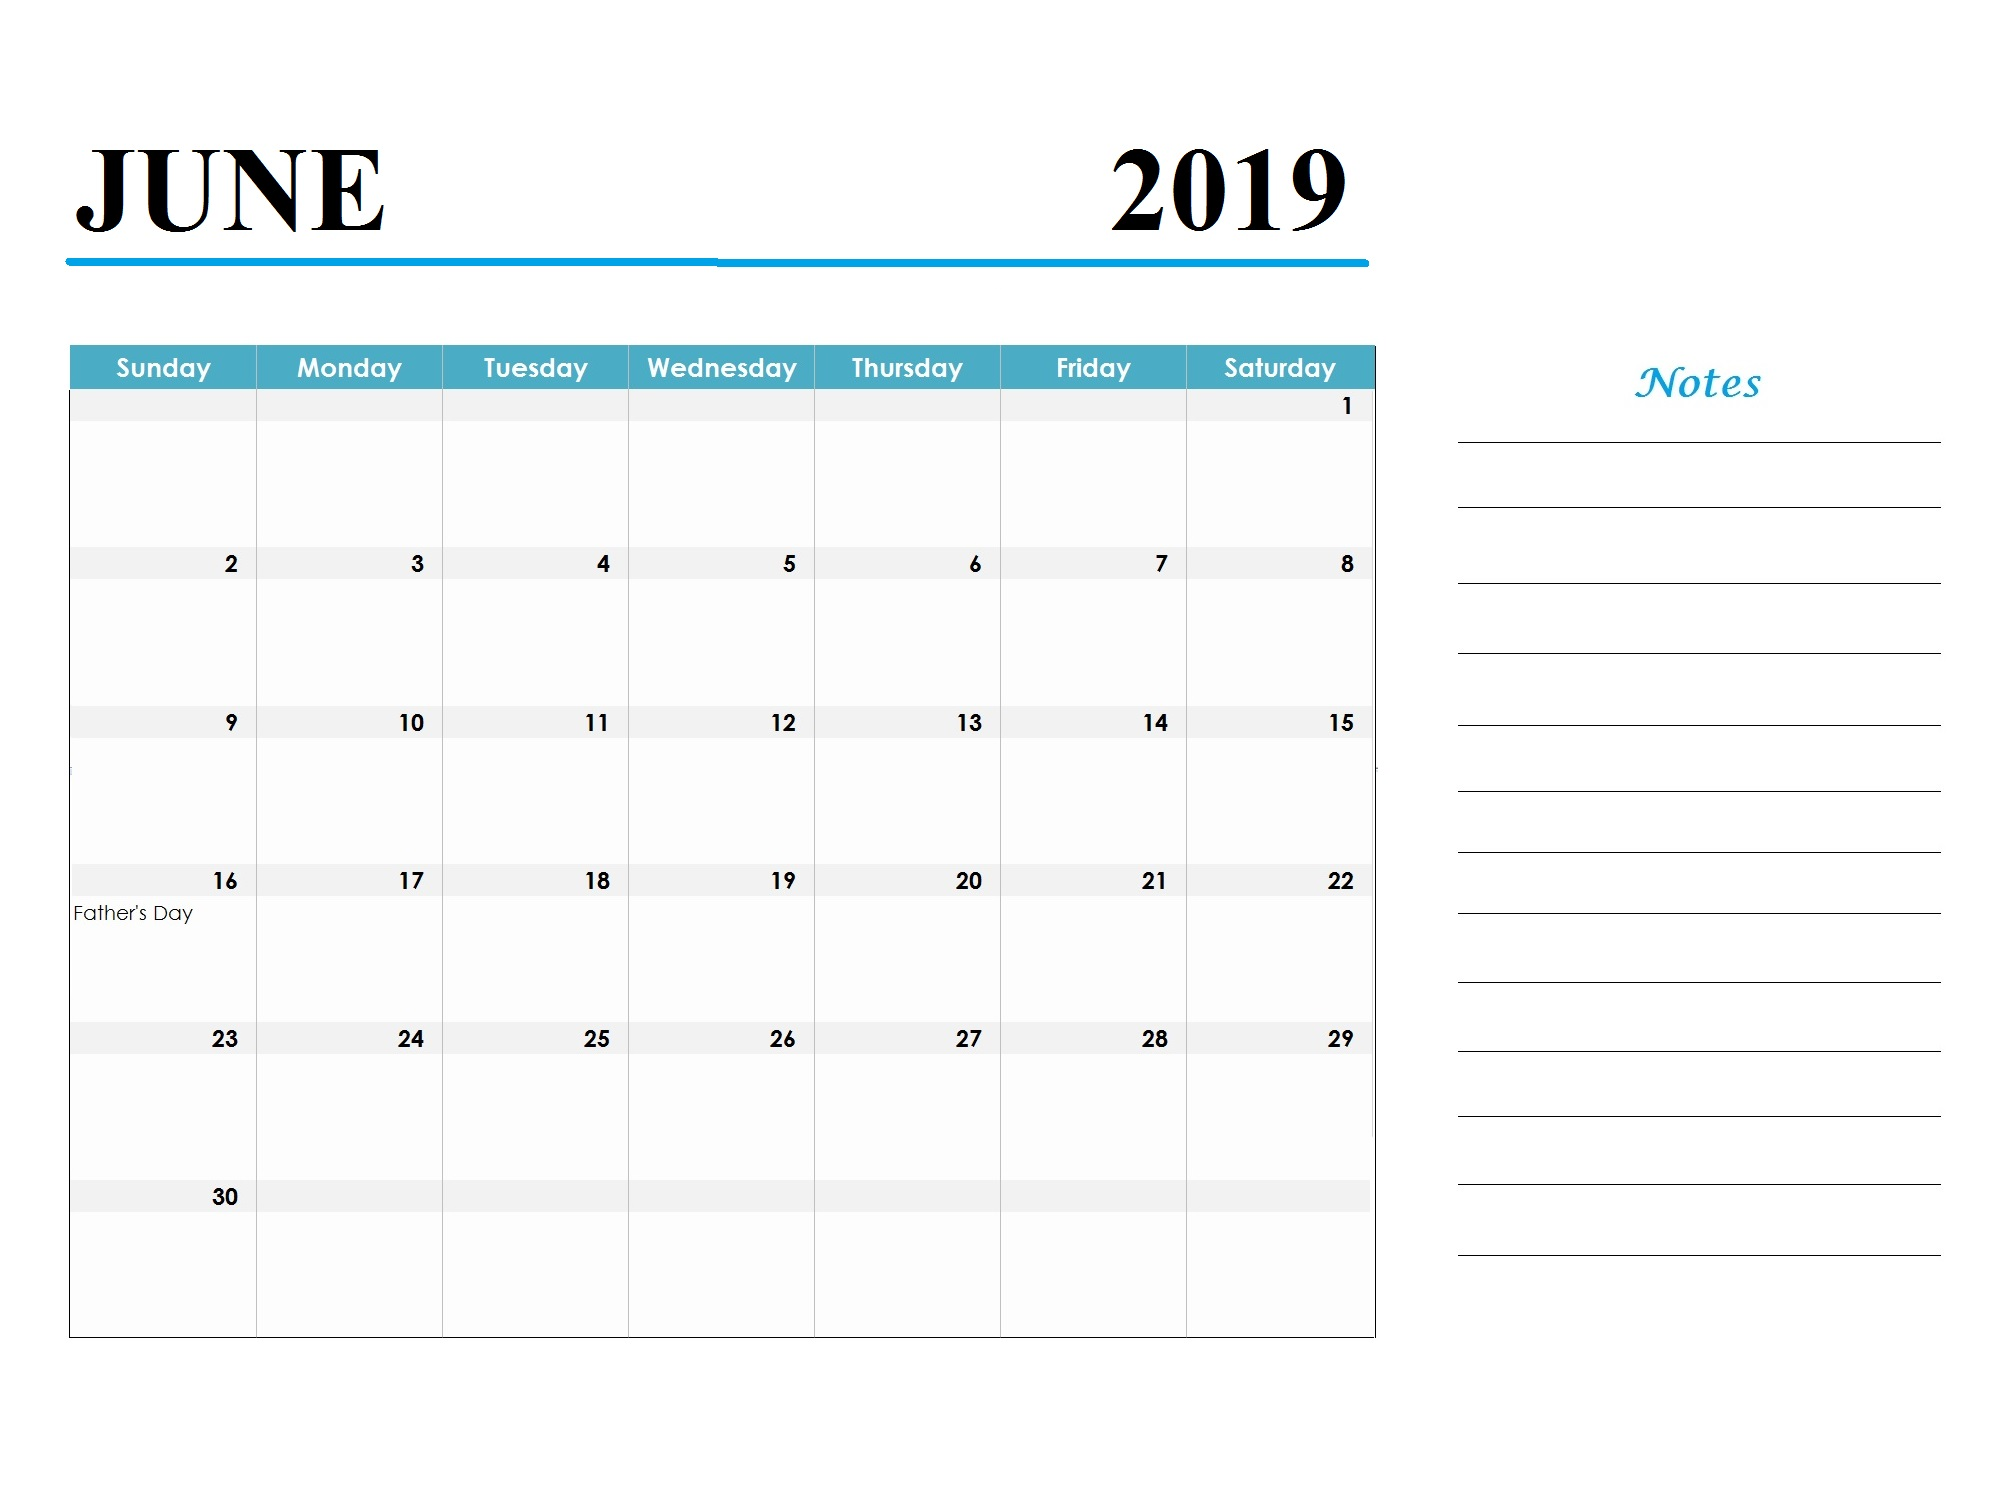 June 2019 Holidays Calendar Template